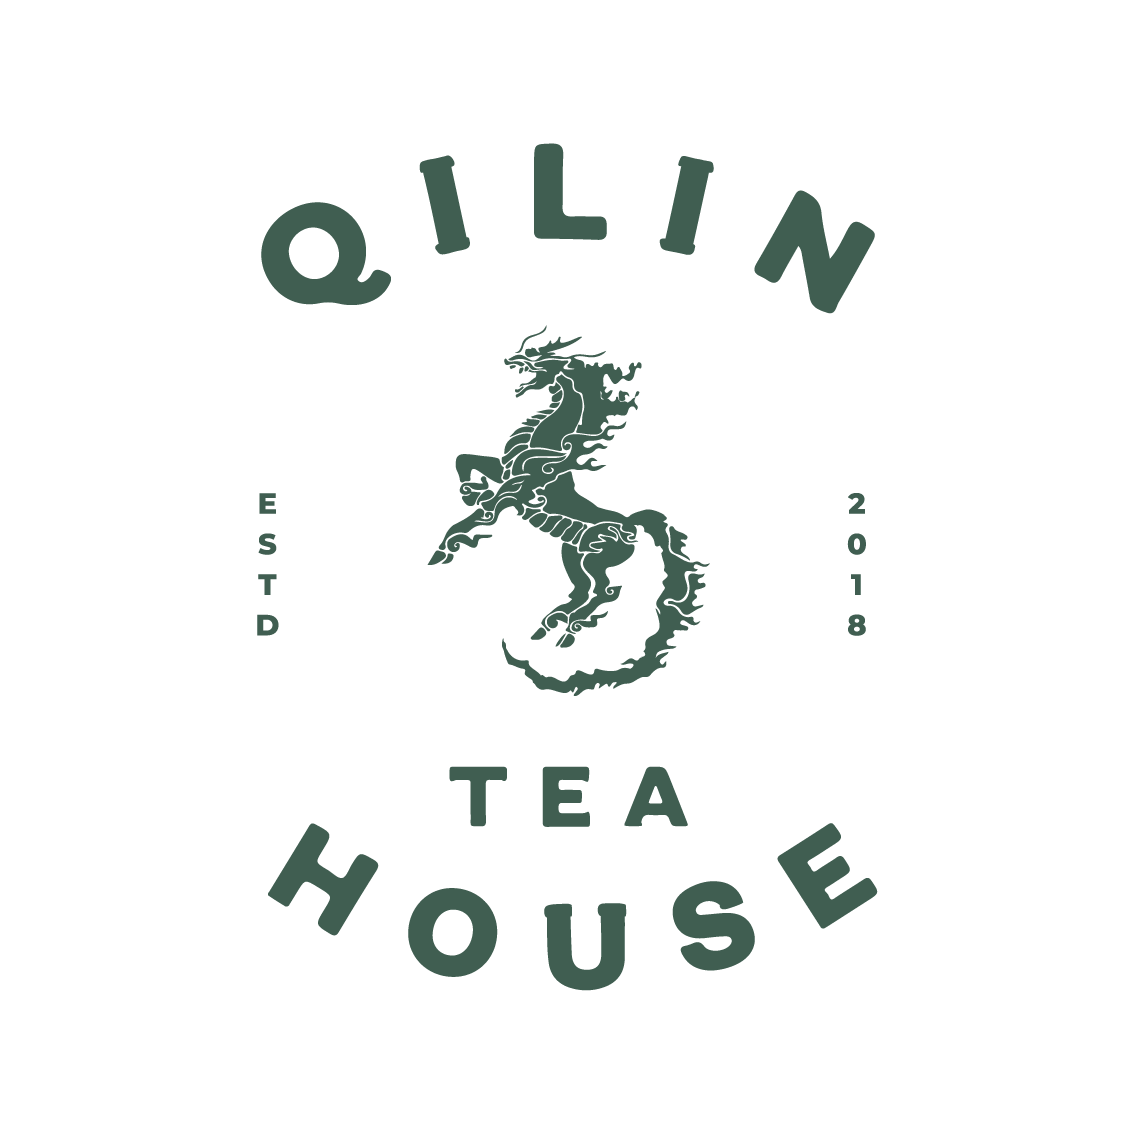 Qilin Tea House